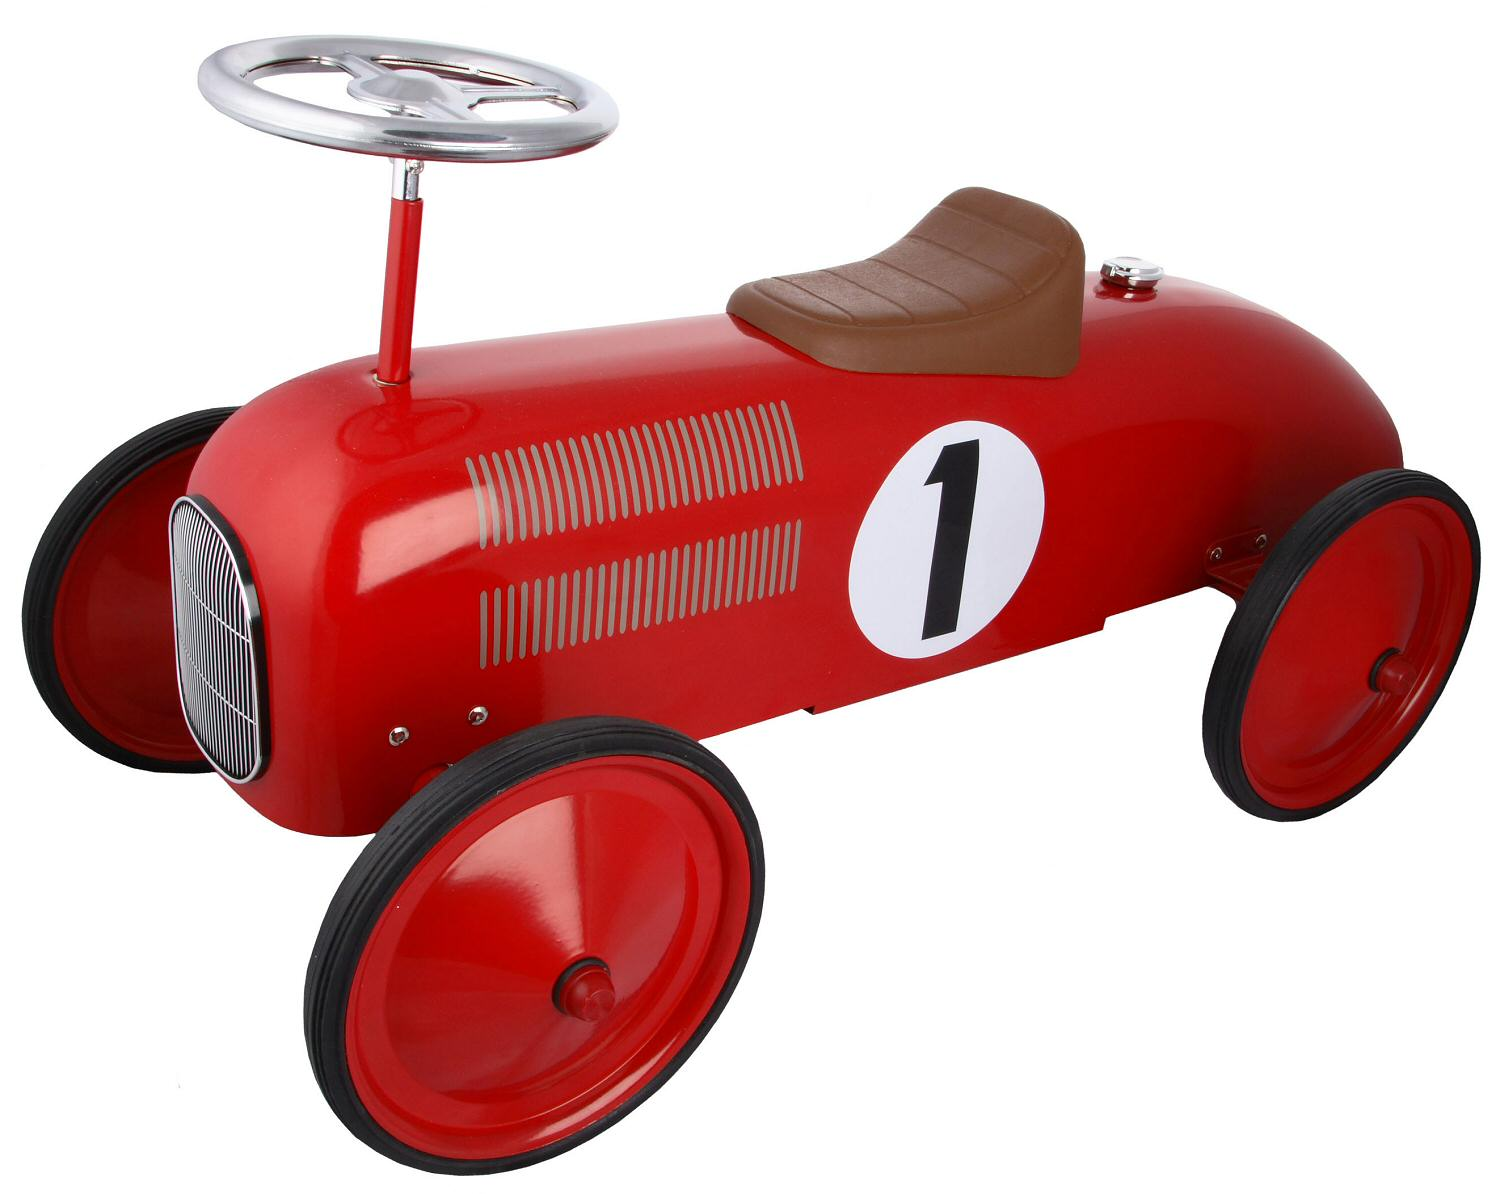 Antique Pedal Car | Used Pedal Cars | Old Pedal Cars